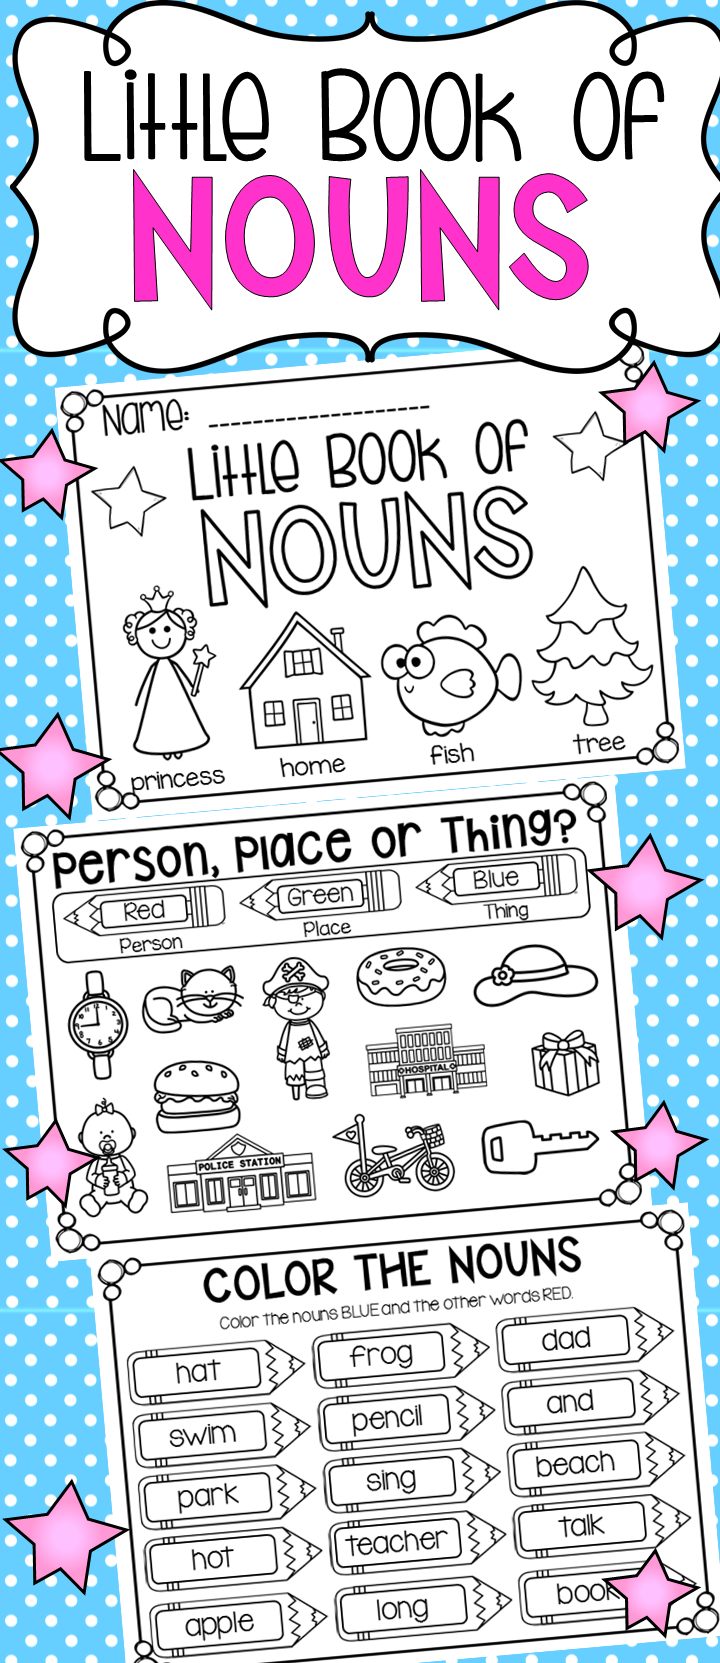 Little Book Of Nouns Half Page Printable Worksheet Booklet Nouns Nouns And Verbs Little Books [ 1663 x 720 Pixel ]